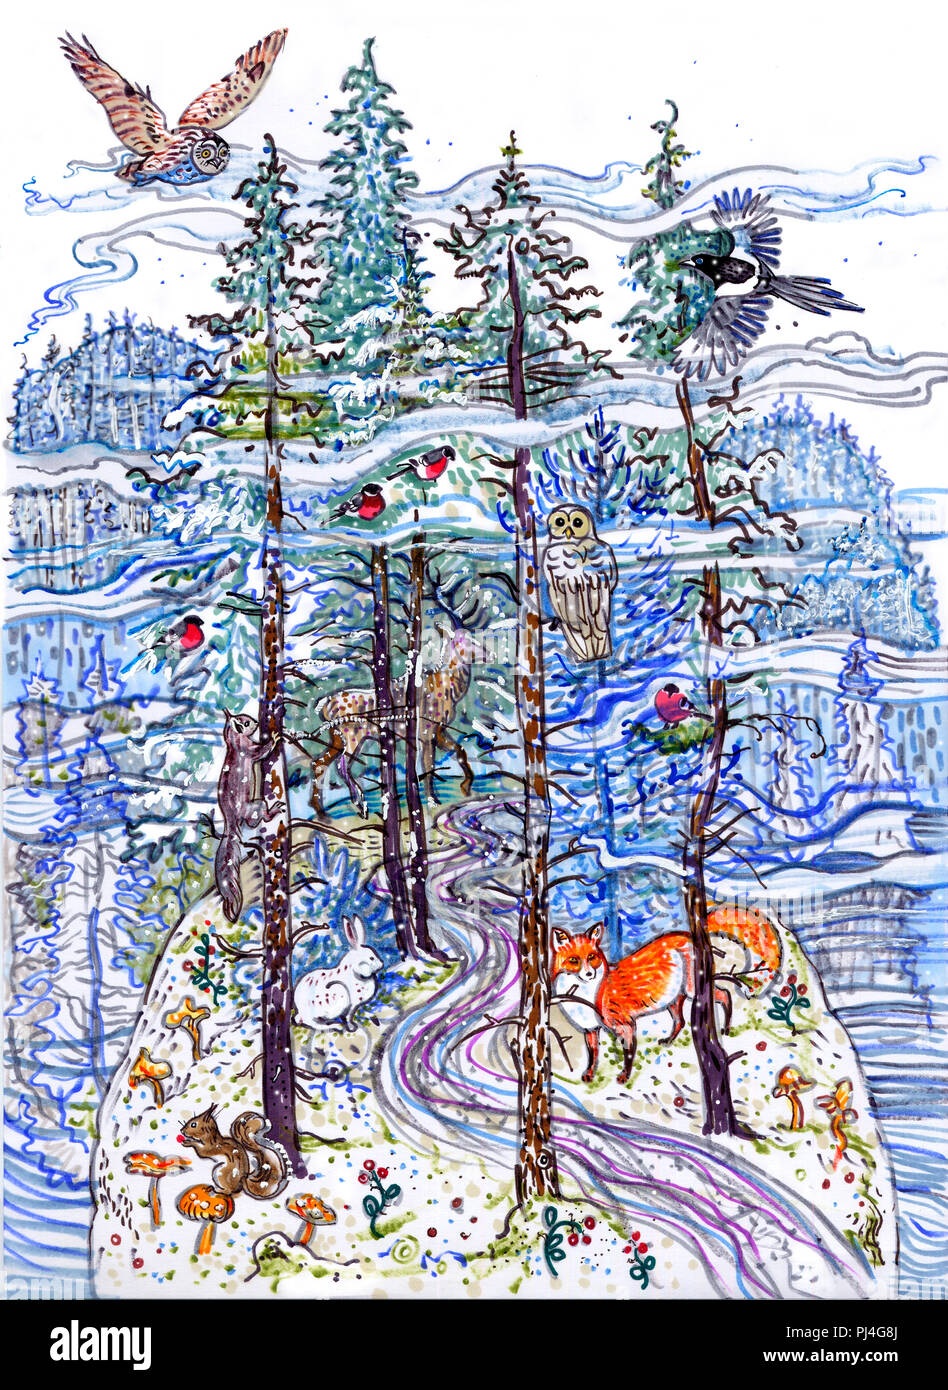 Magic winter forest. Spruce, fir tree, snow, animals : owl, magpie, bullfinch, squirrel, deer, fox, hare. Northern fairy tale. Hand drawn illustration. For children, Christmas, New Year greeting card. - Stock Image